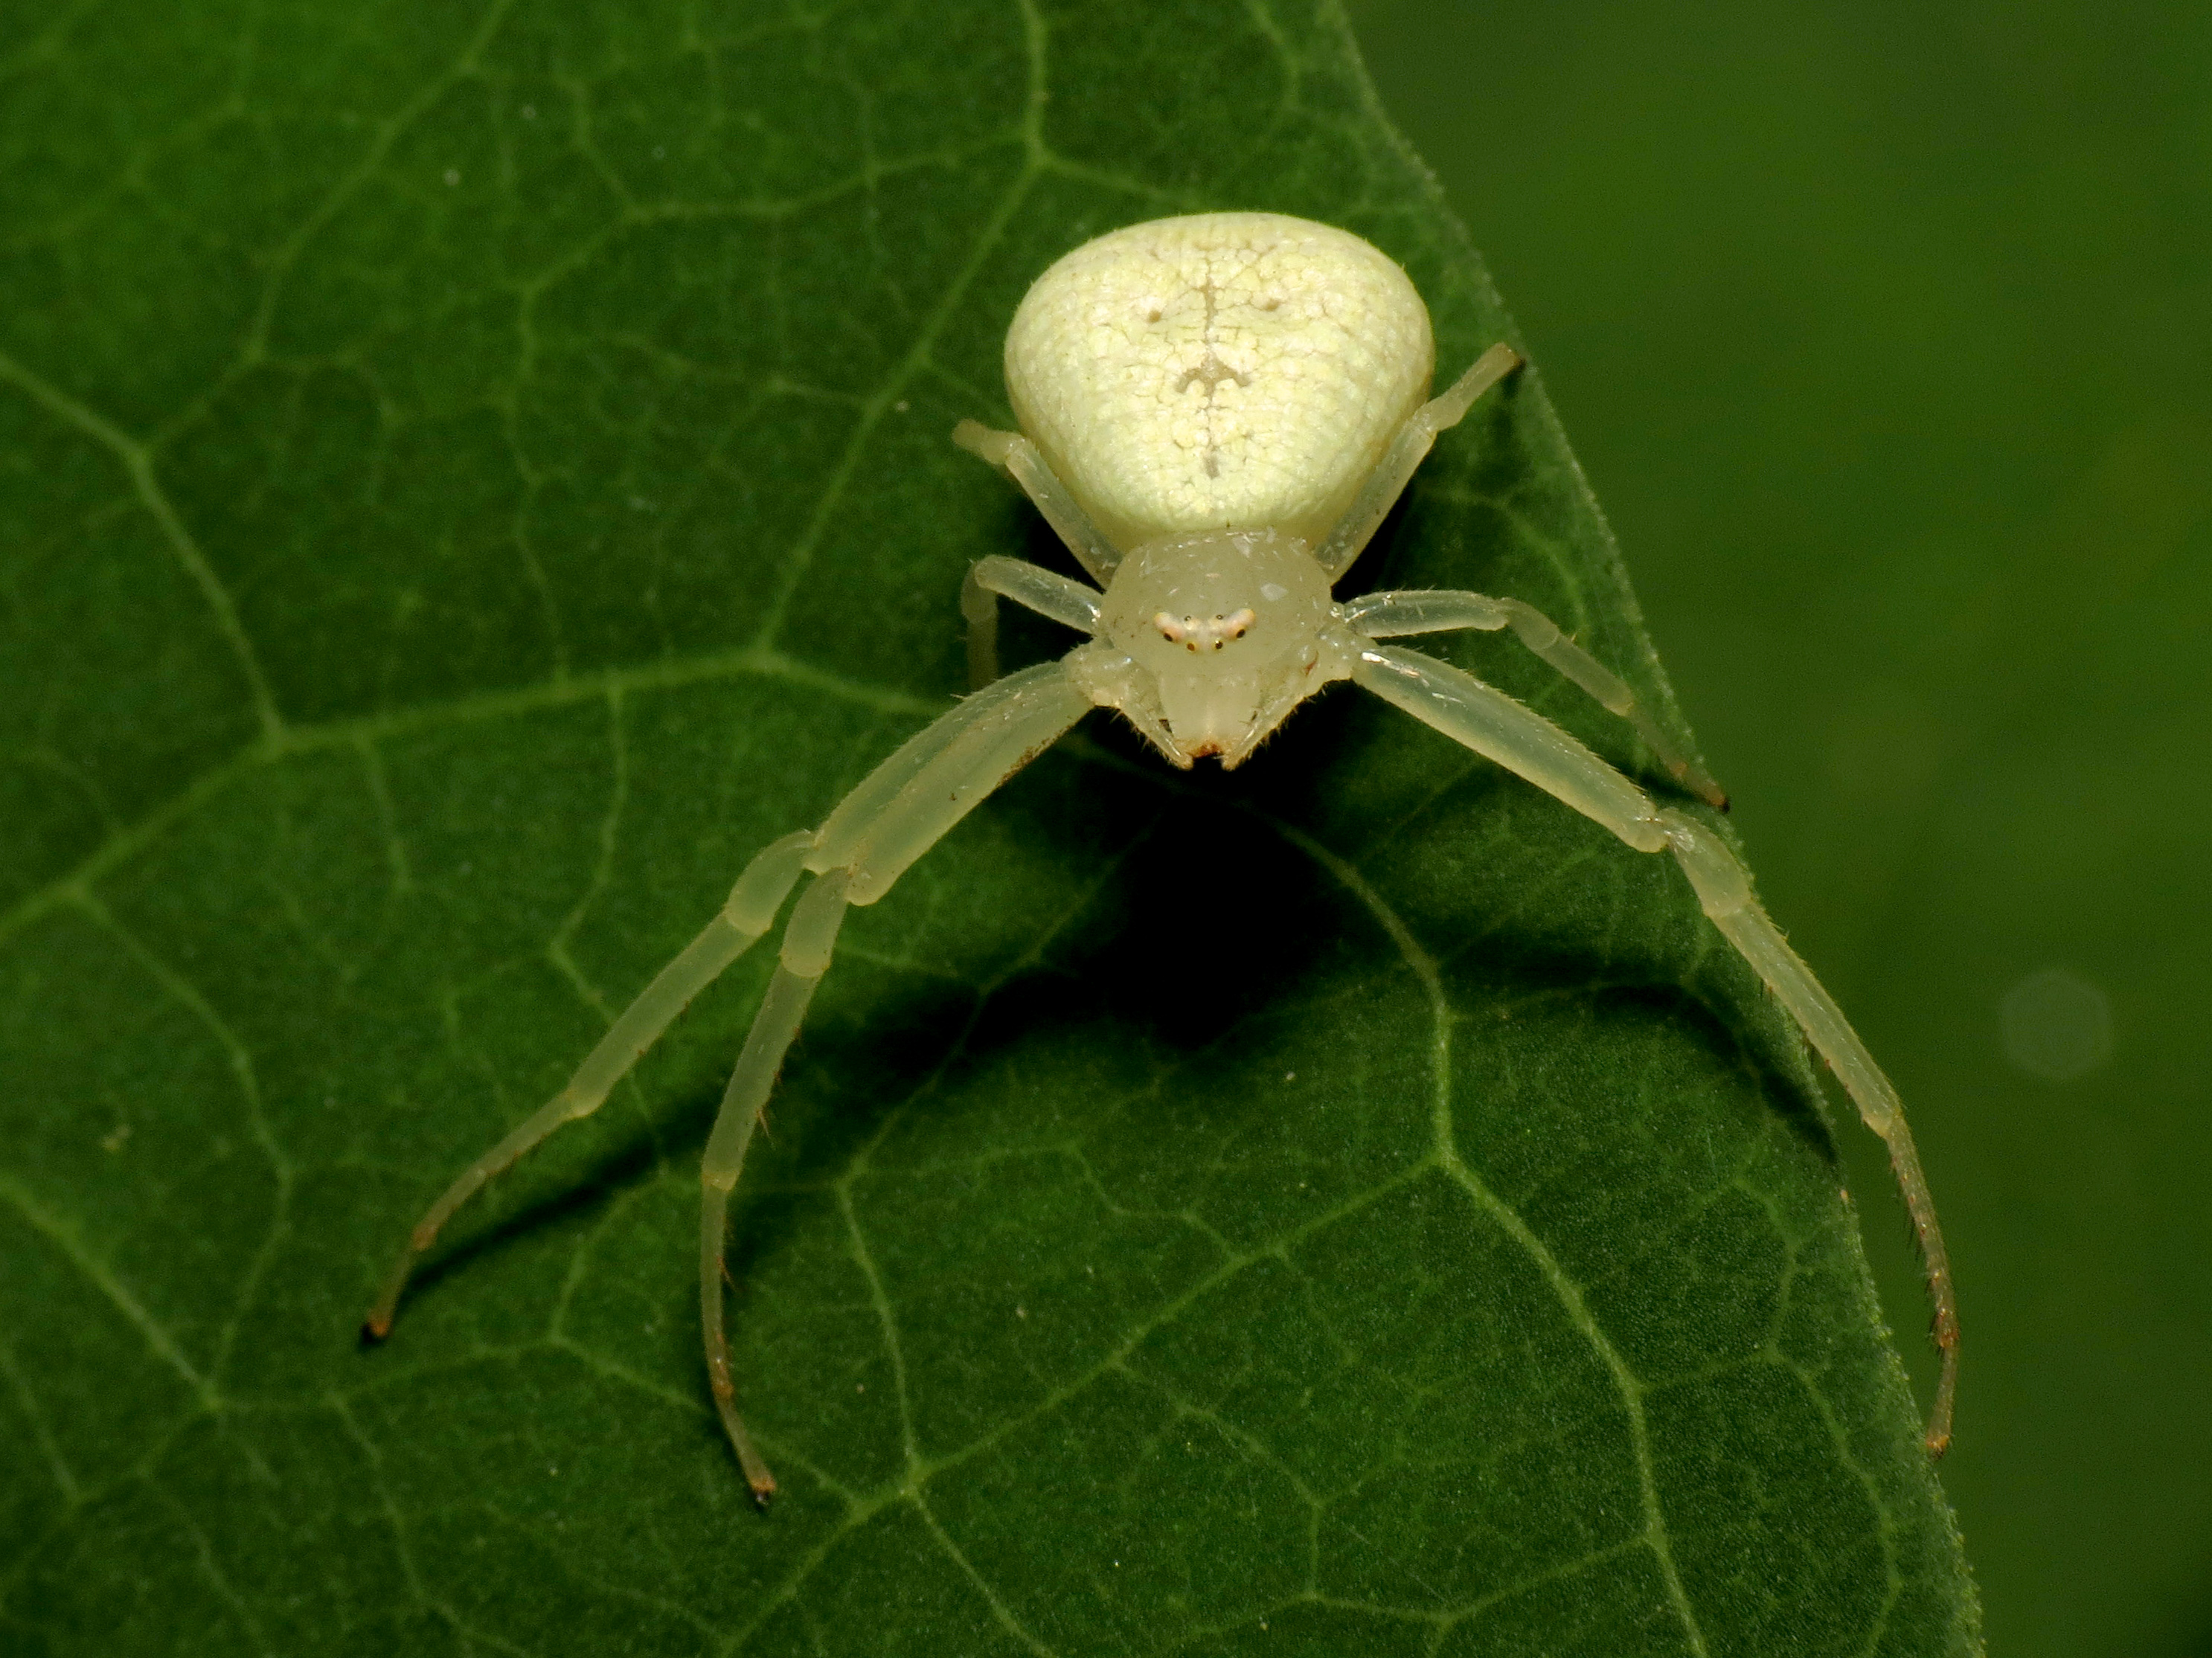 American Green Crab Spider (Misumessus oblongus)